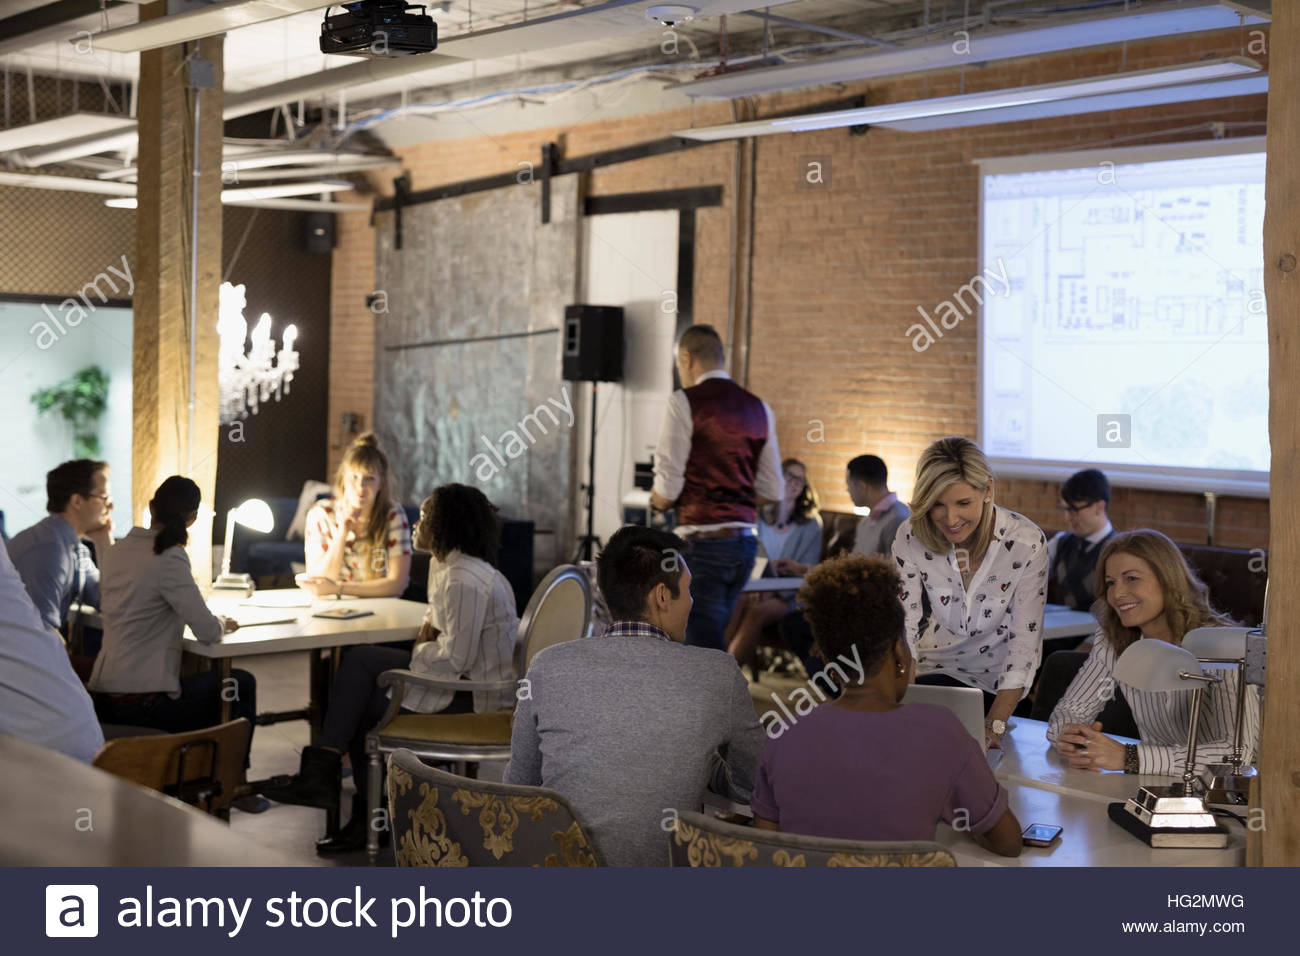 Designers working in focus groups in office - Stock Image